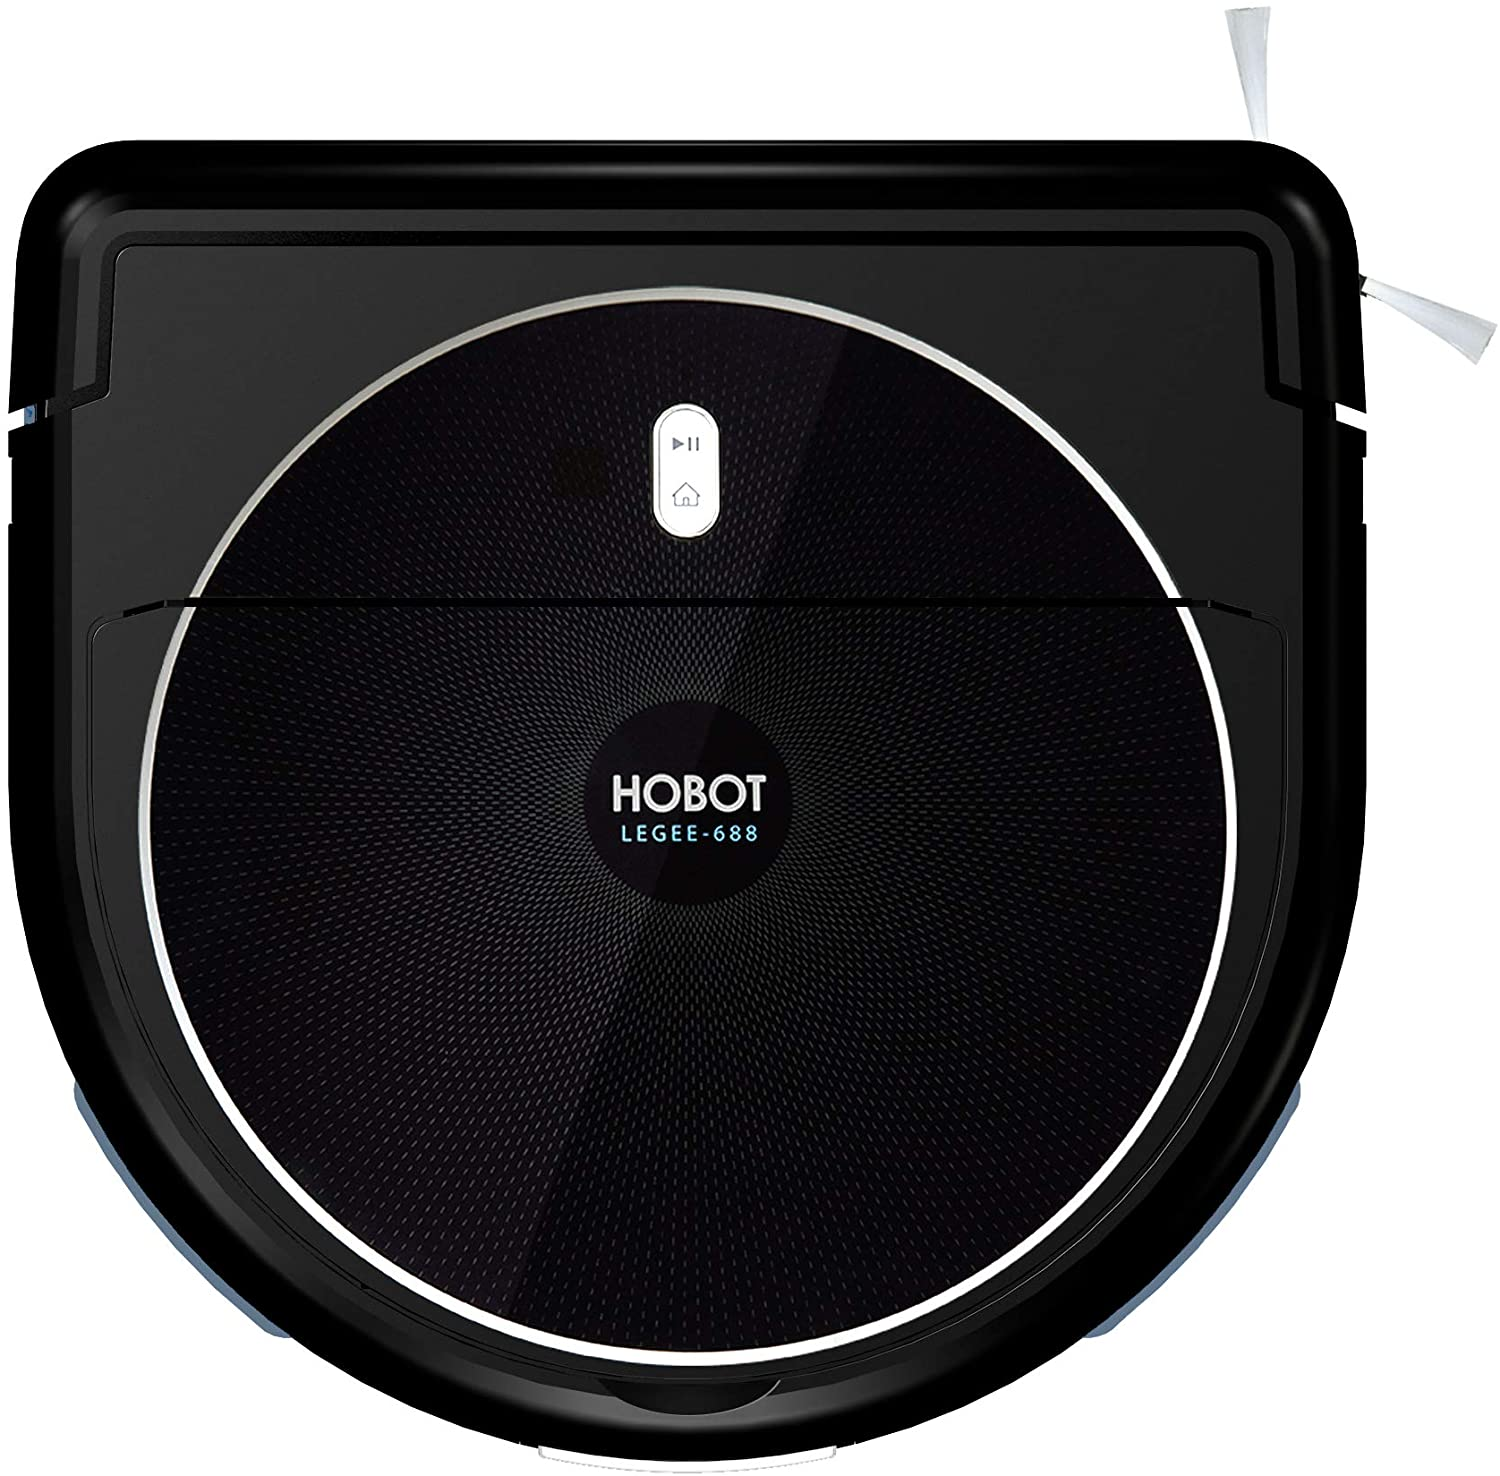 HOBOT LEGEE-688 Vacuum-Mop Talent Clean Robot for Floor, Automatic Robot for Wet or Dry Floor Cleaning - Kitchen Pet Mode - Realtime Map in APP